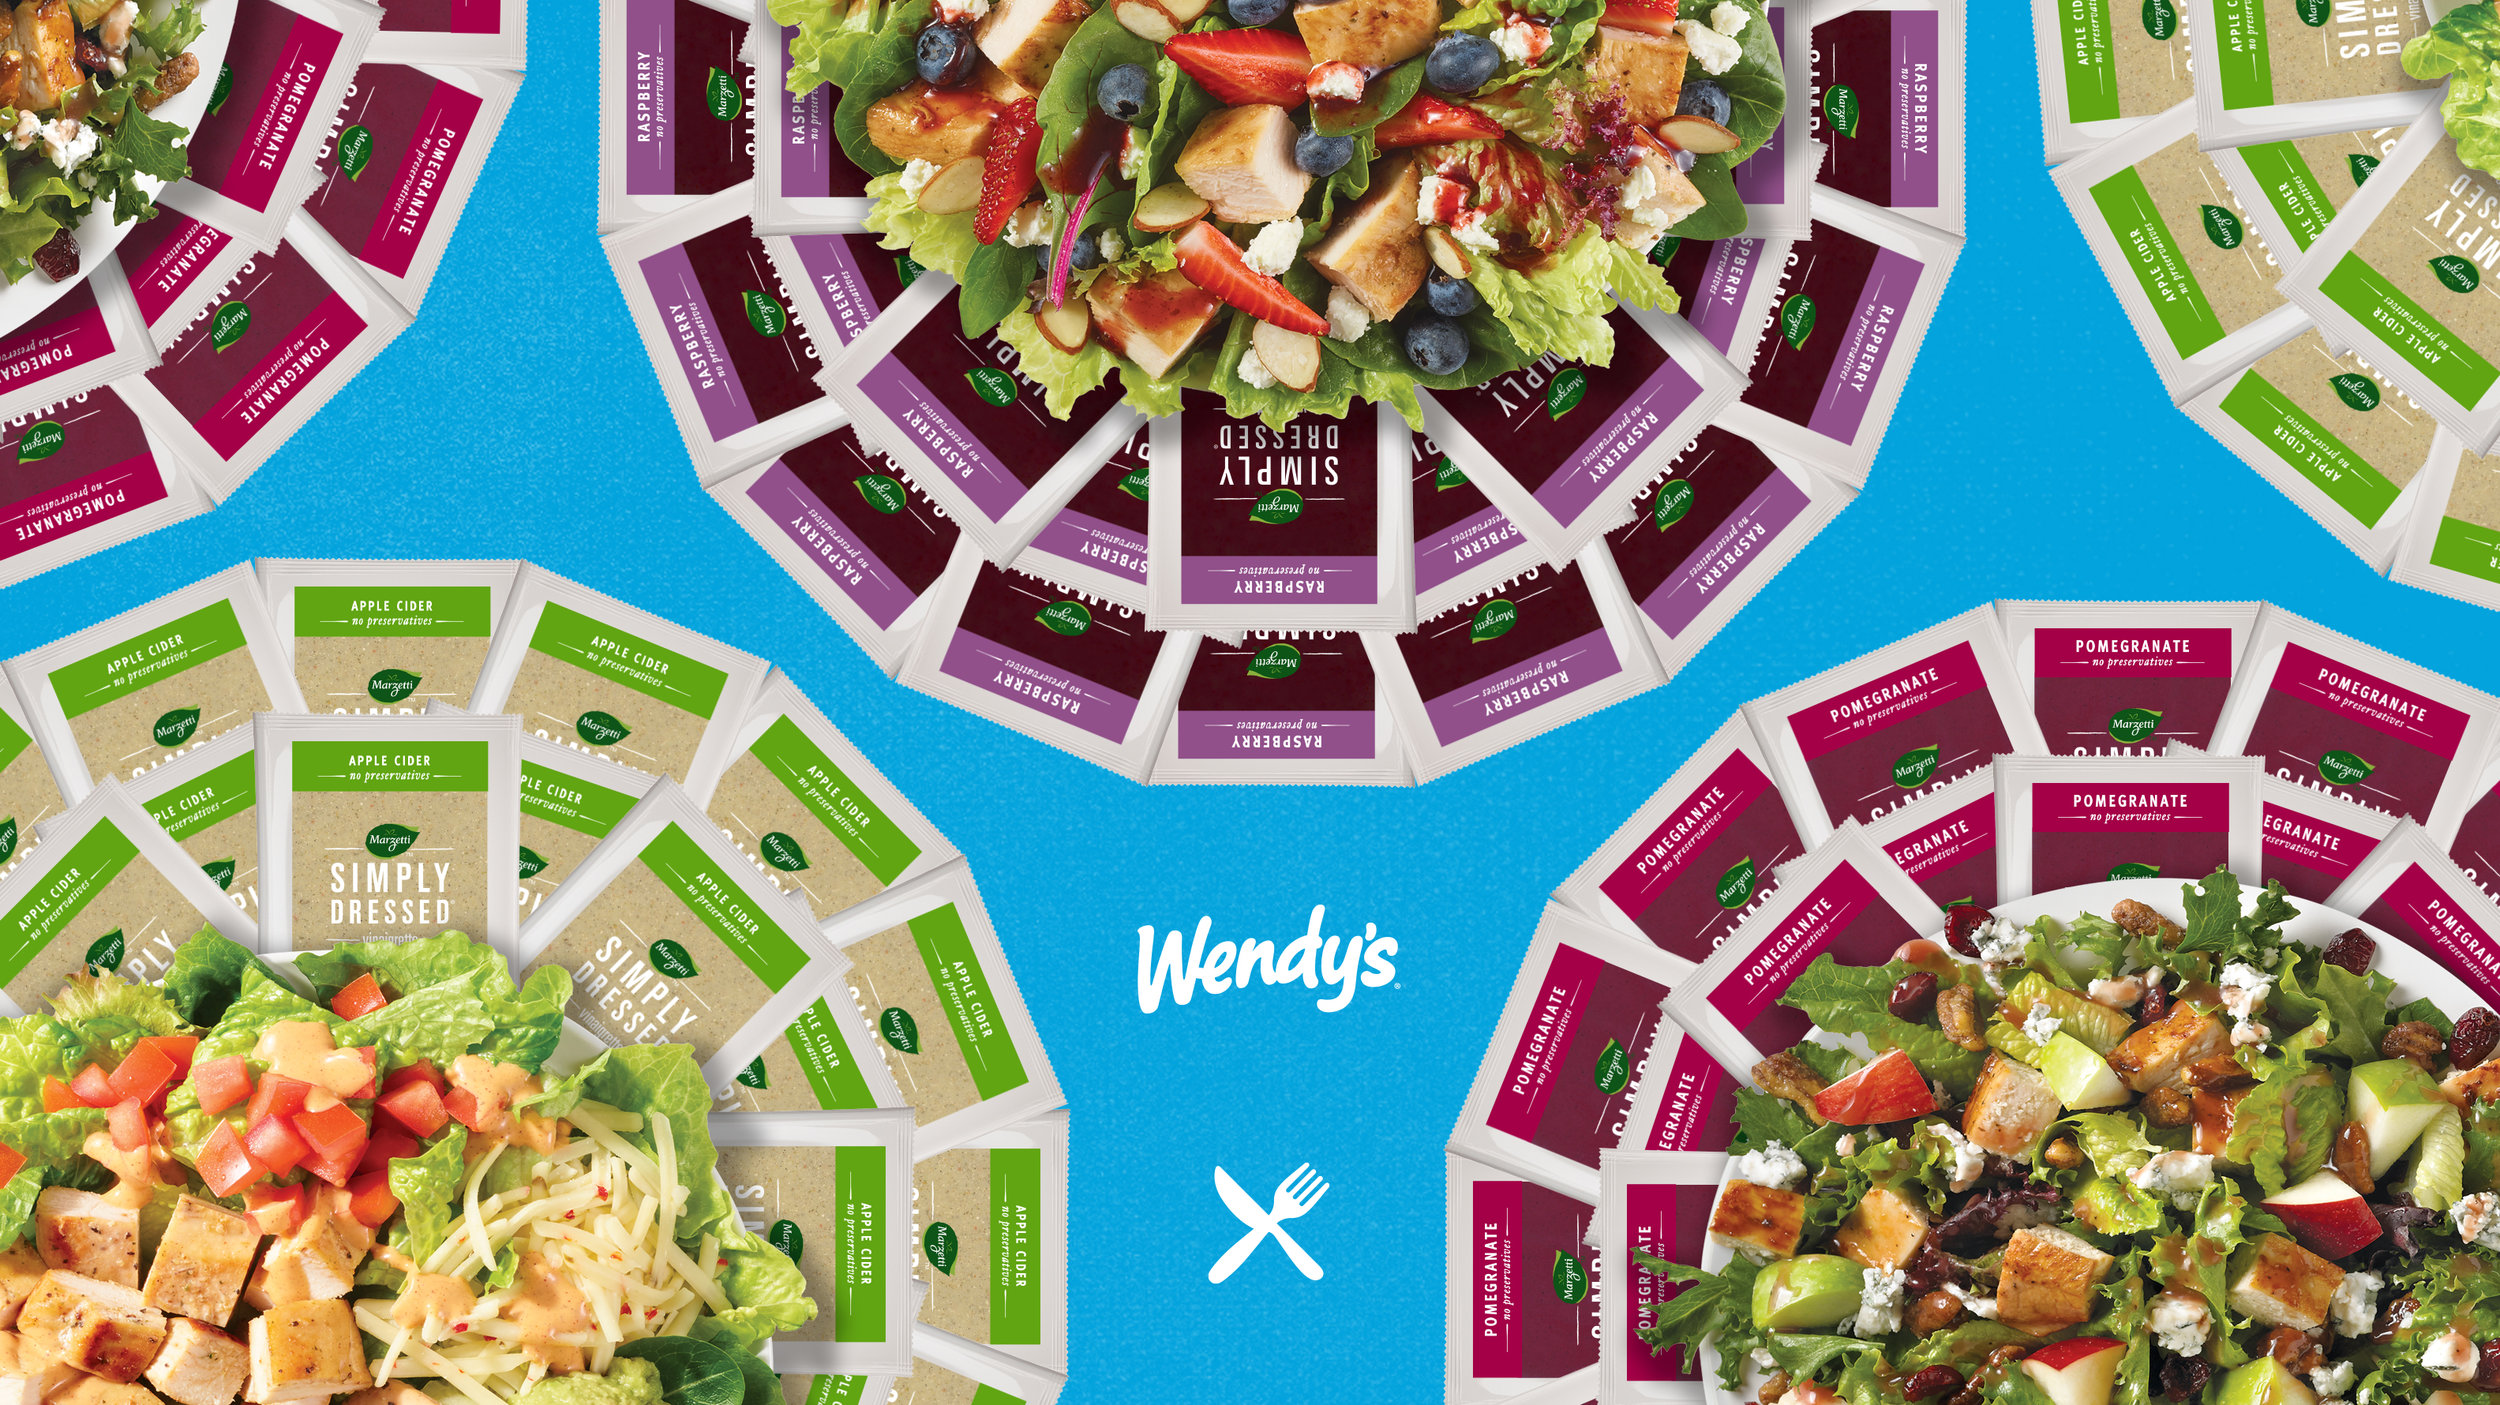 Wendy's salads are full of fresh ingredients and dressed with delicious dressings from Marzetti® Simply Dressed line of salad dressings.